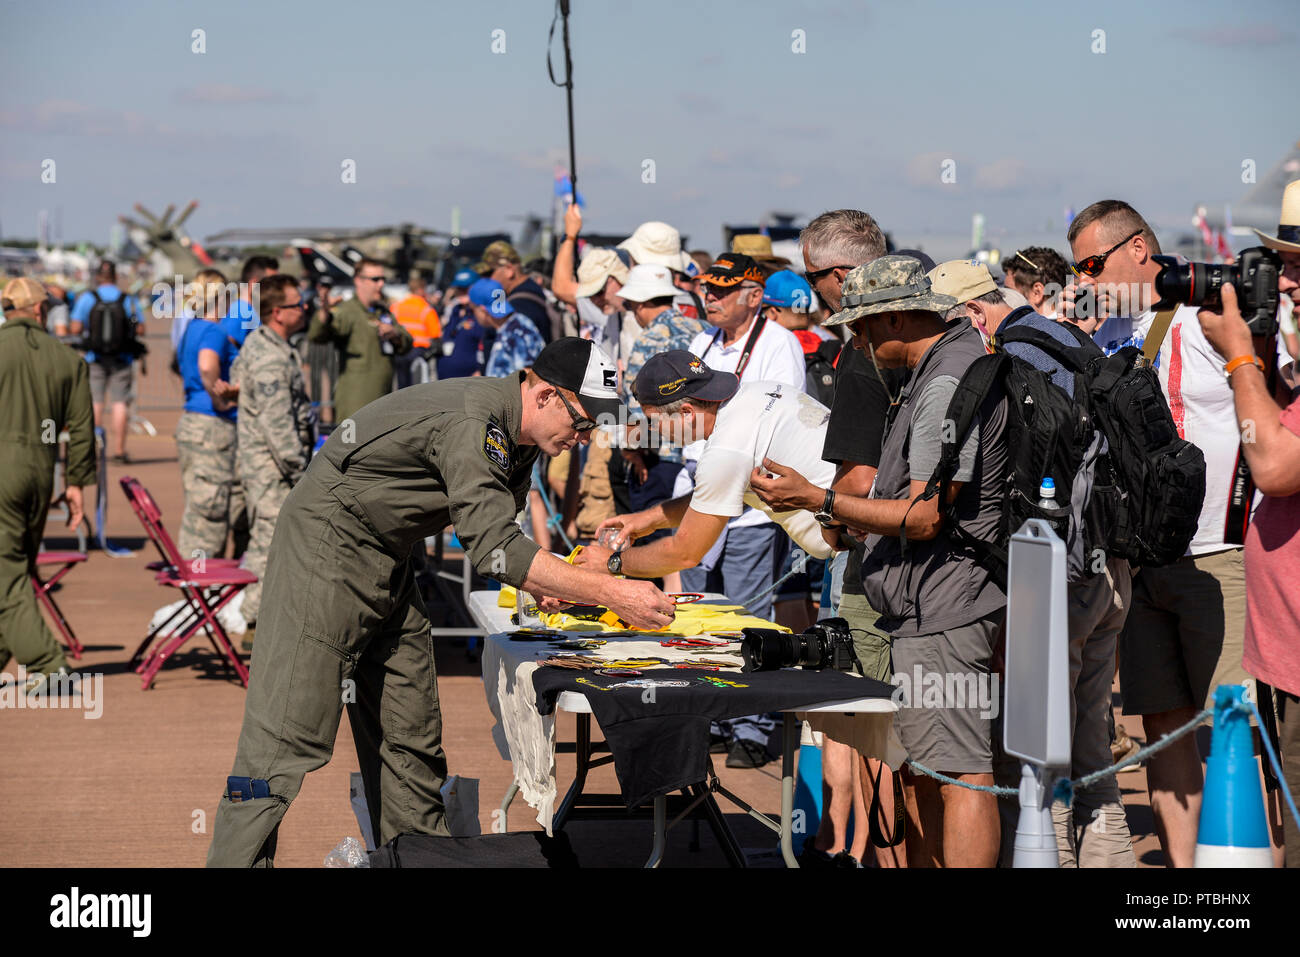 Crowds of people at the Royal International Air Tattoo, RIAT, RAF Fairford, in the Cotswolds. Aircraft enthusiasts shopping for souvenirs from crews Stock Photo